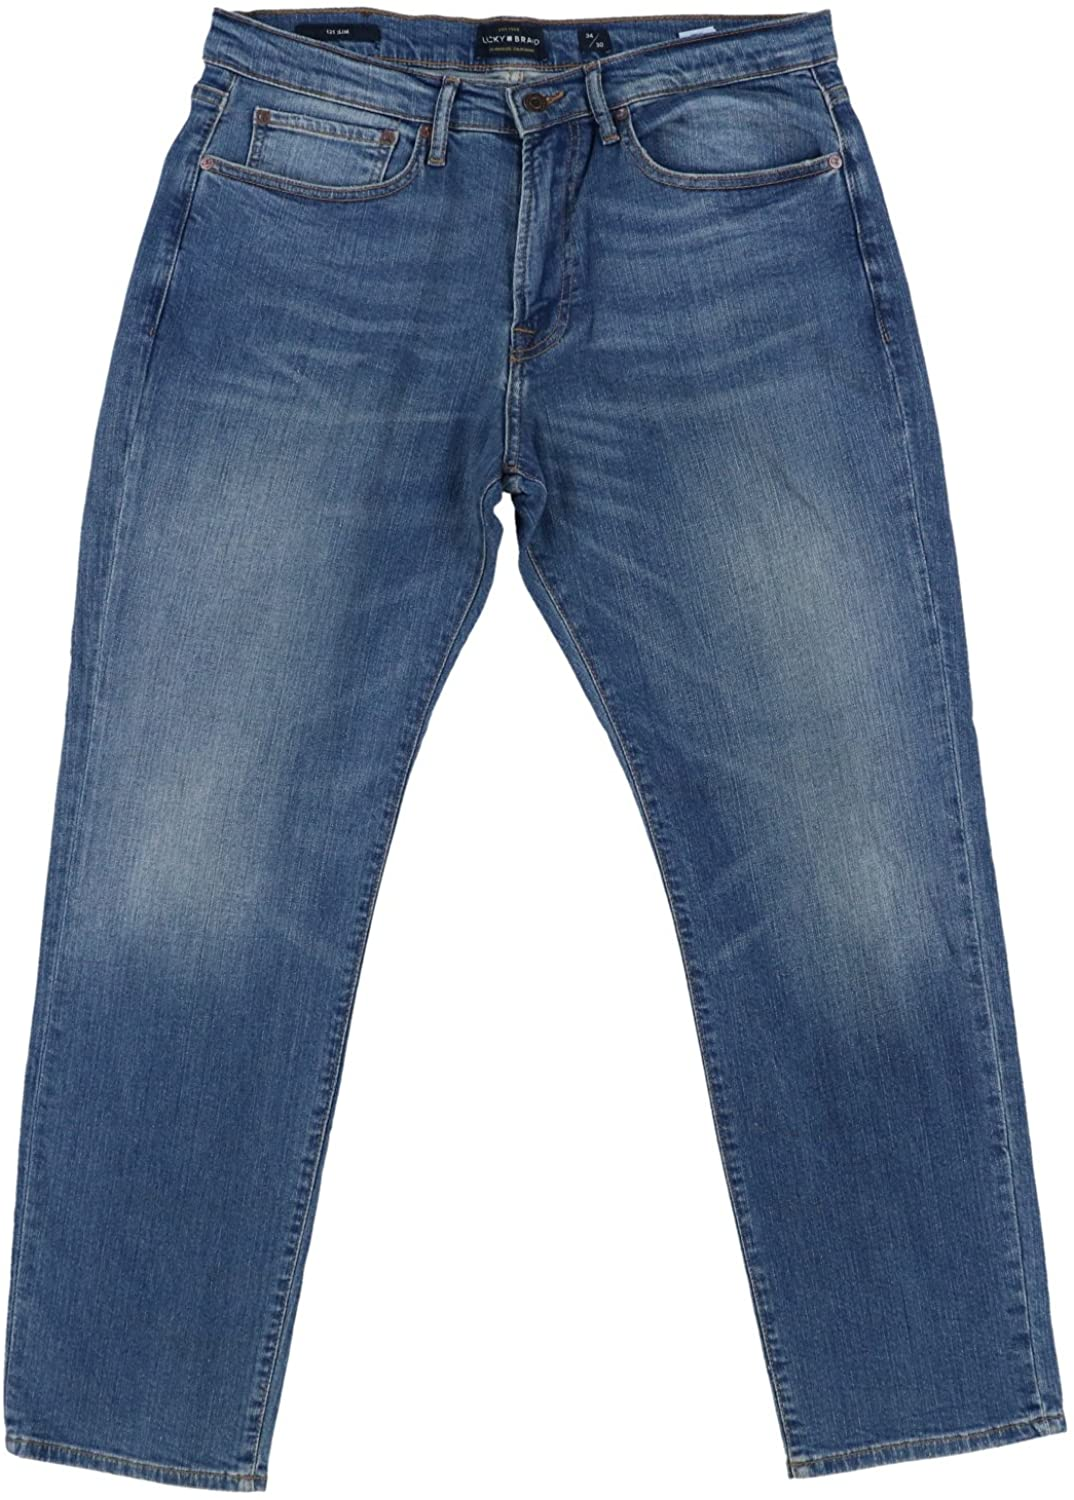 Lucky Brand Men's 121 Slim Fit Jeans